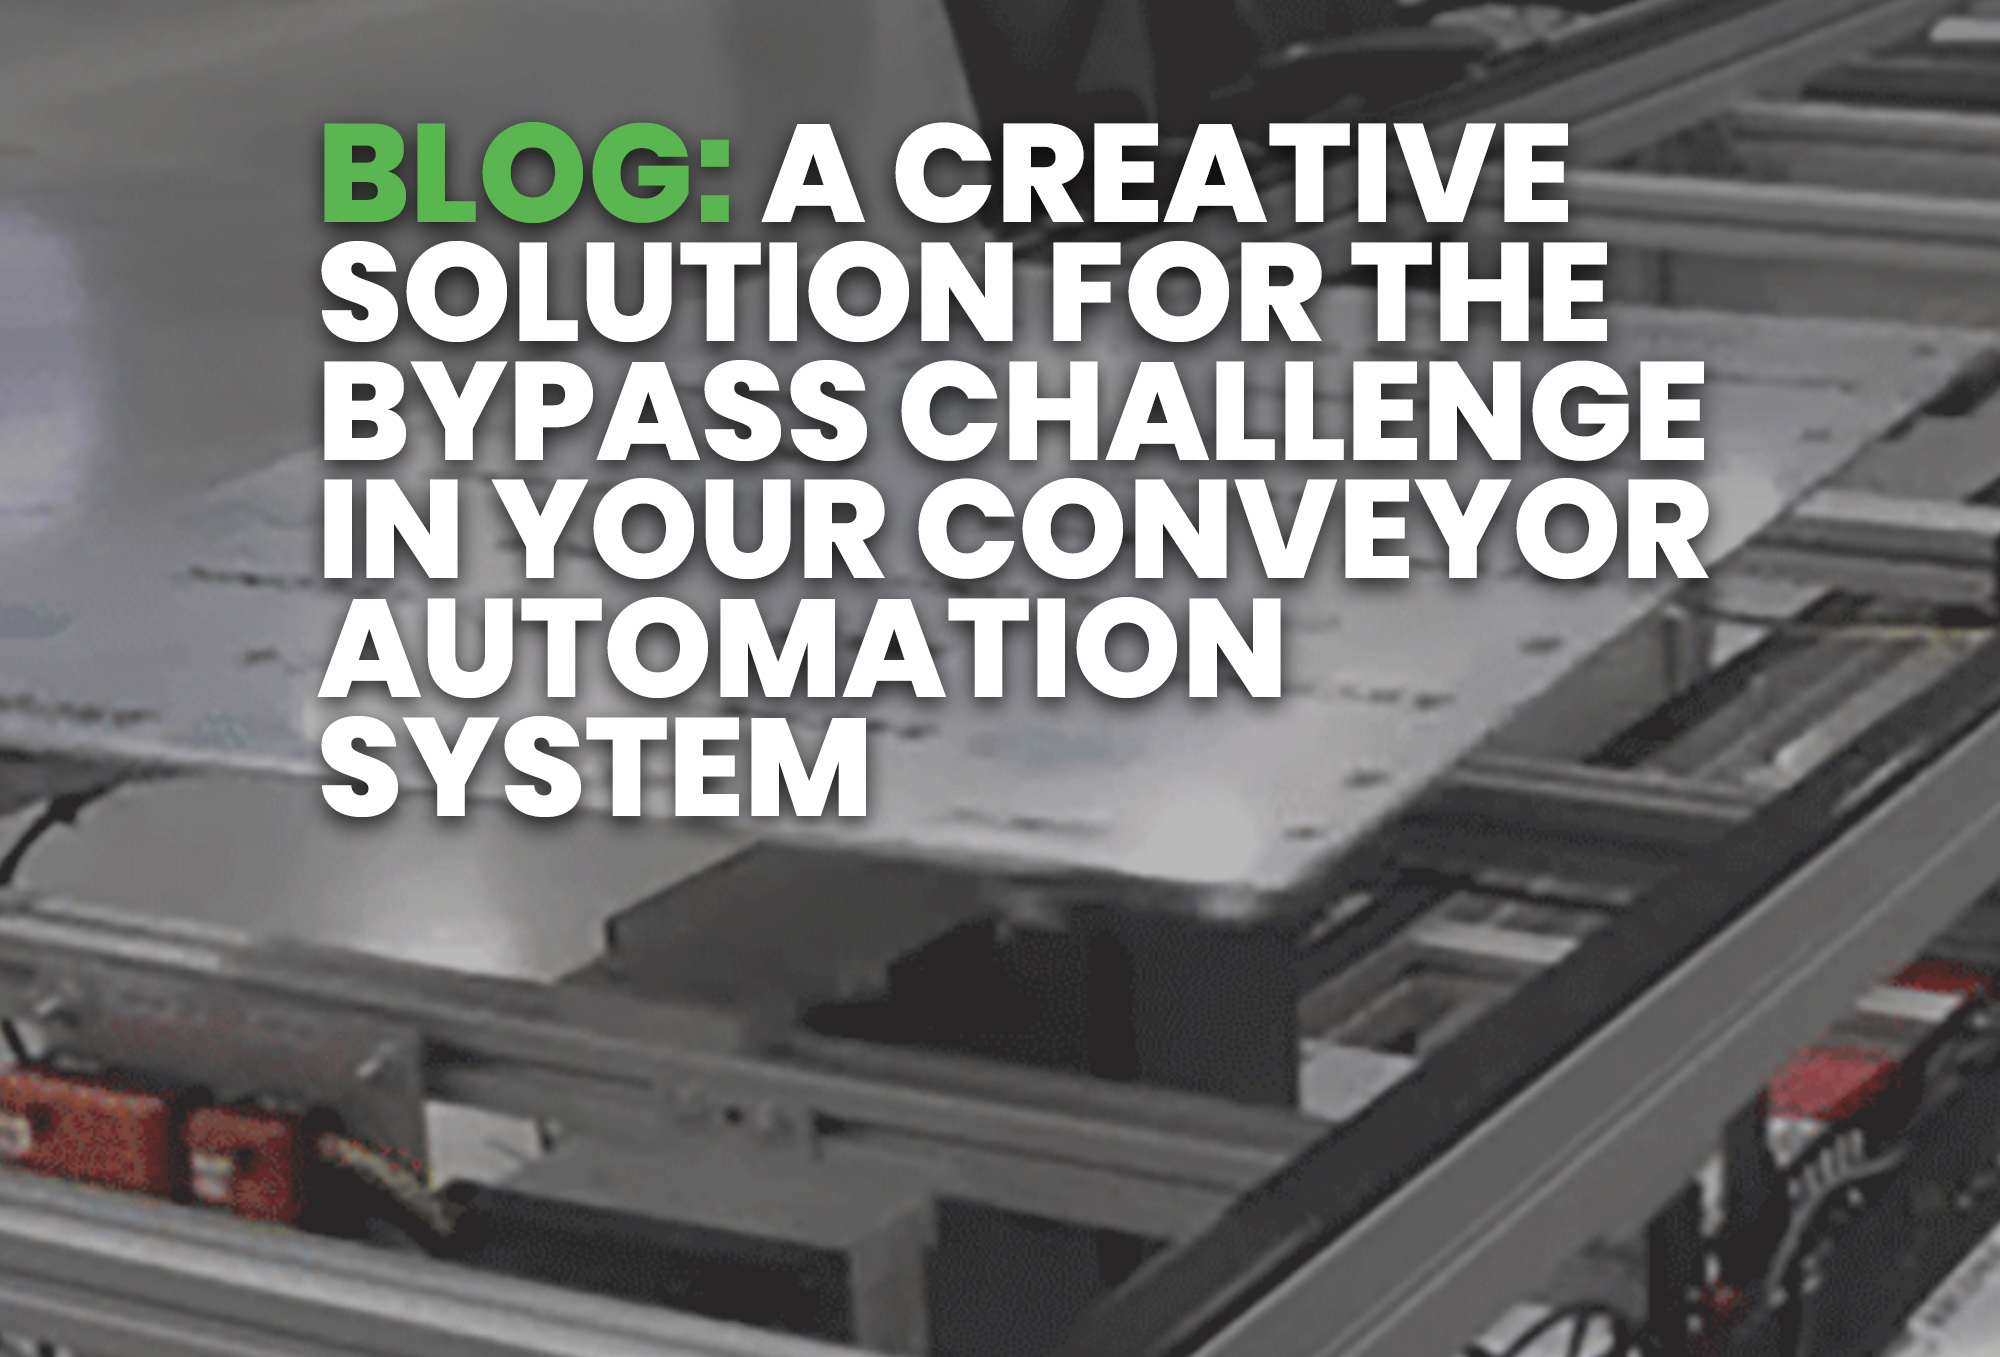 BLOG- A Creative Solution for the Bypass Challenge in Your Conveyor Automation System